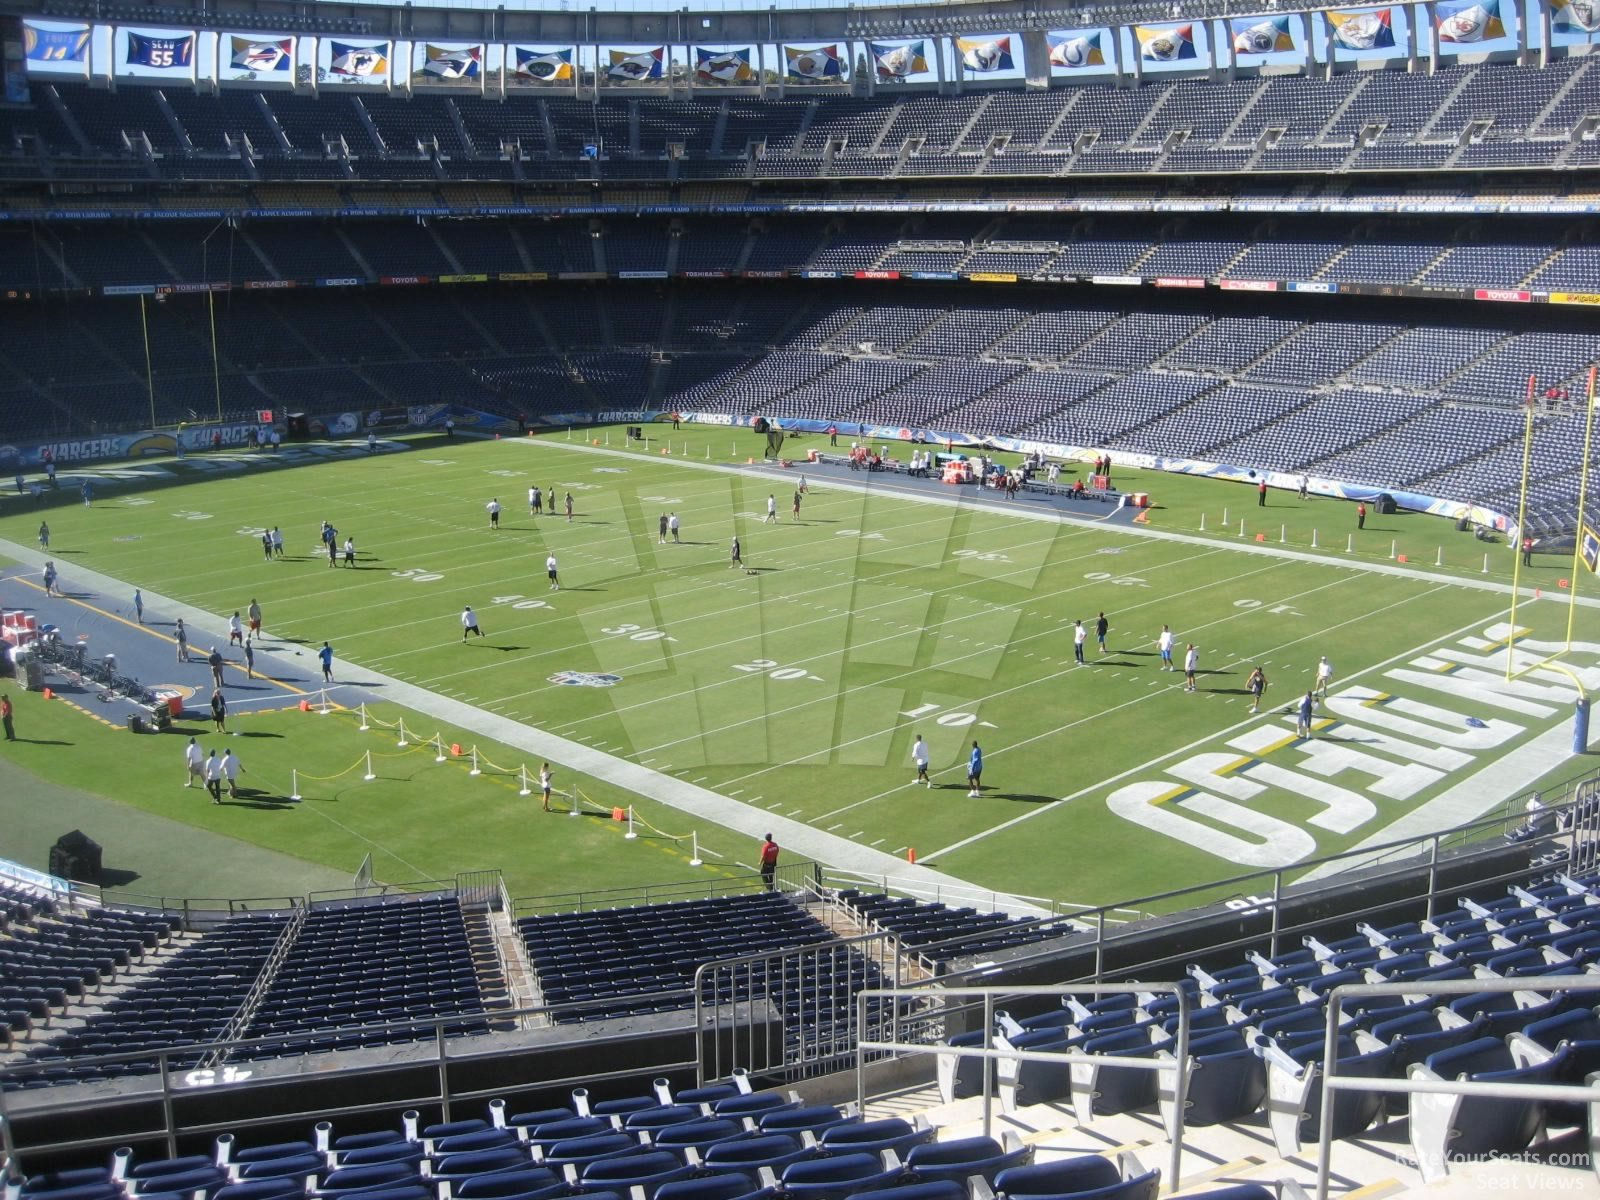 Loge Endzone Qualcomm Stadium Football Seating